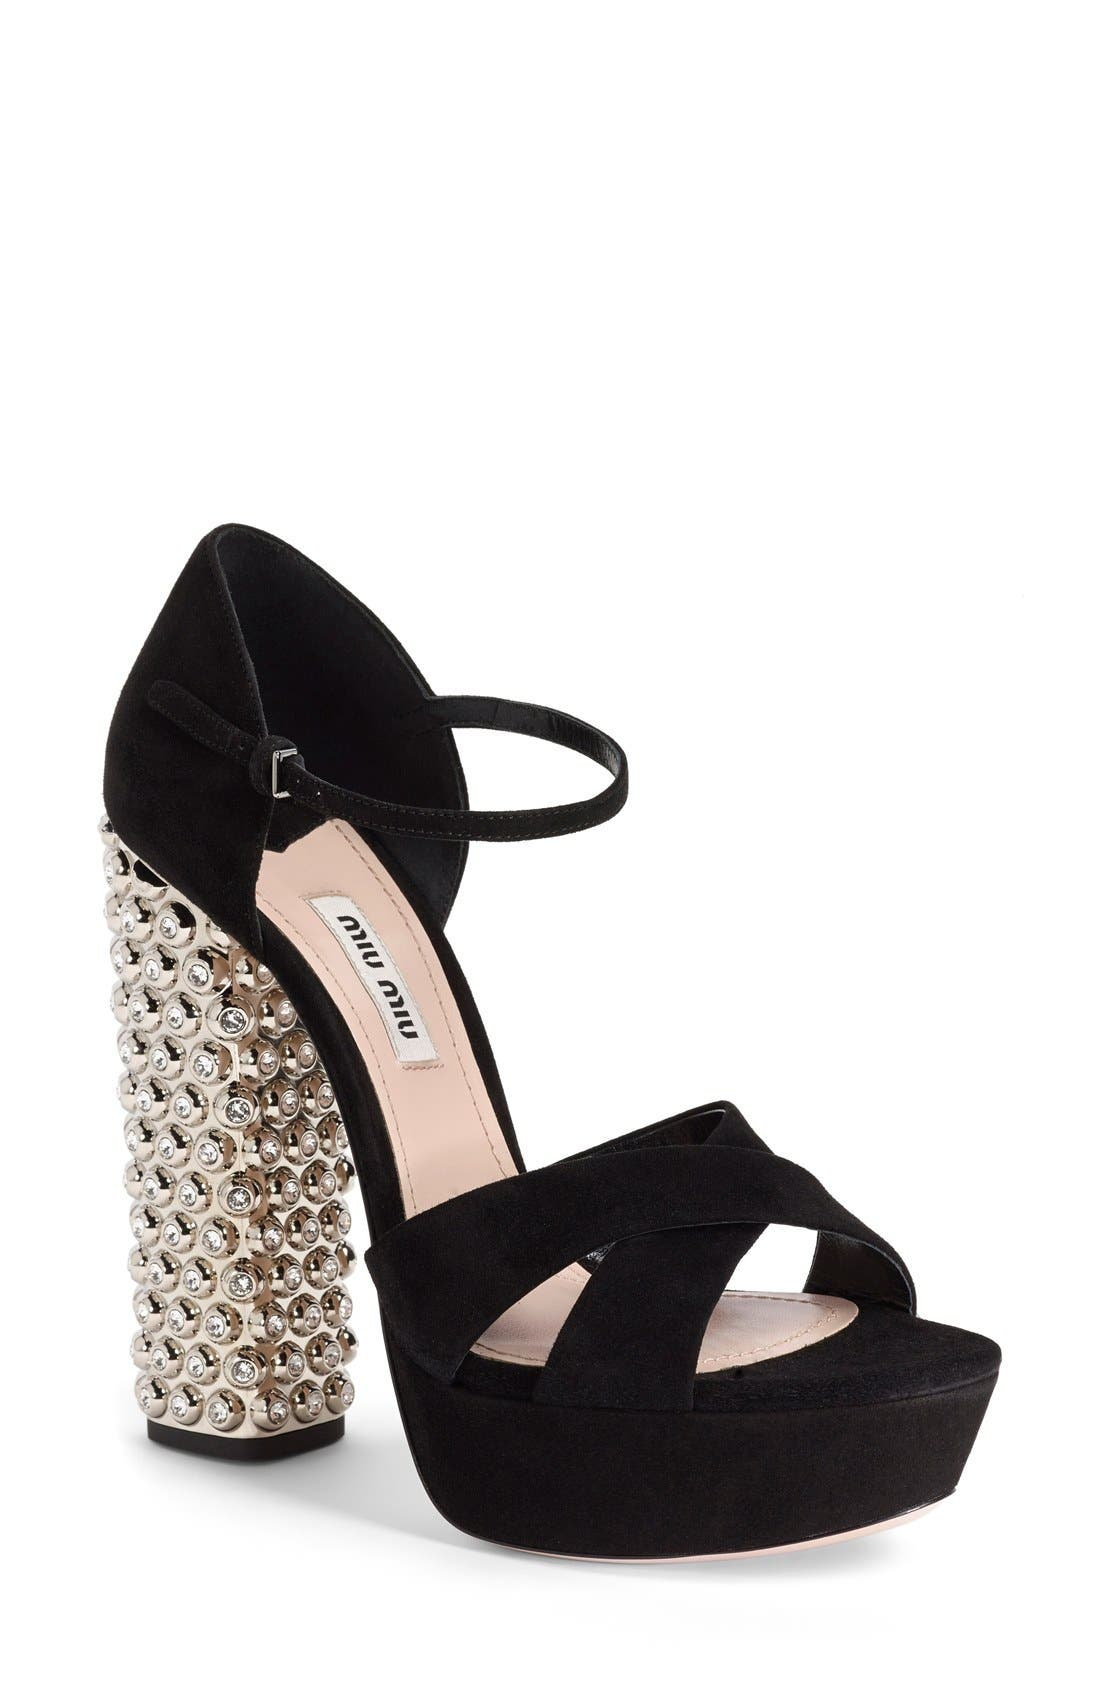 Alternate Image 1 Selected - Miu Miu Jeweled Platform Sandal (Women)